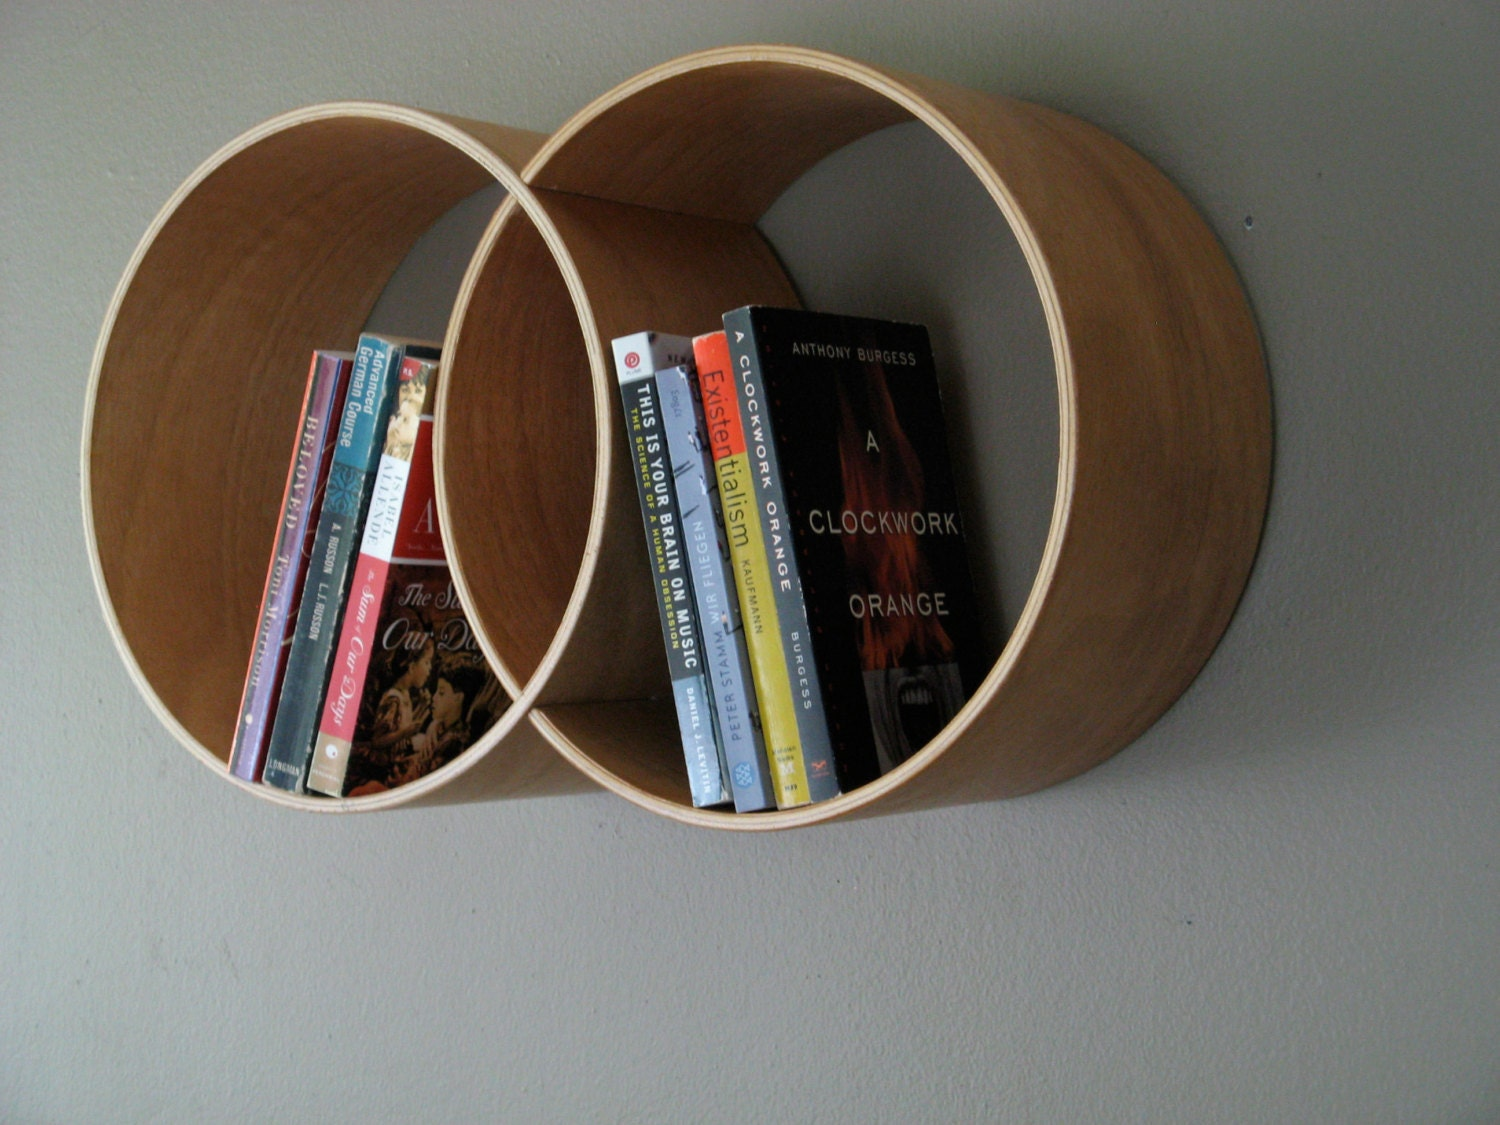 Round Shelving Unit Reclaimed Wood Shelf Wall Shelf by HKNDesign